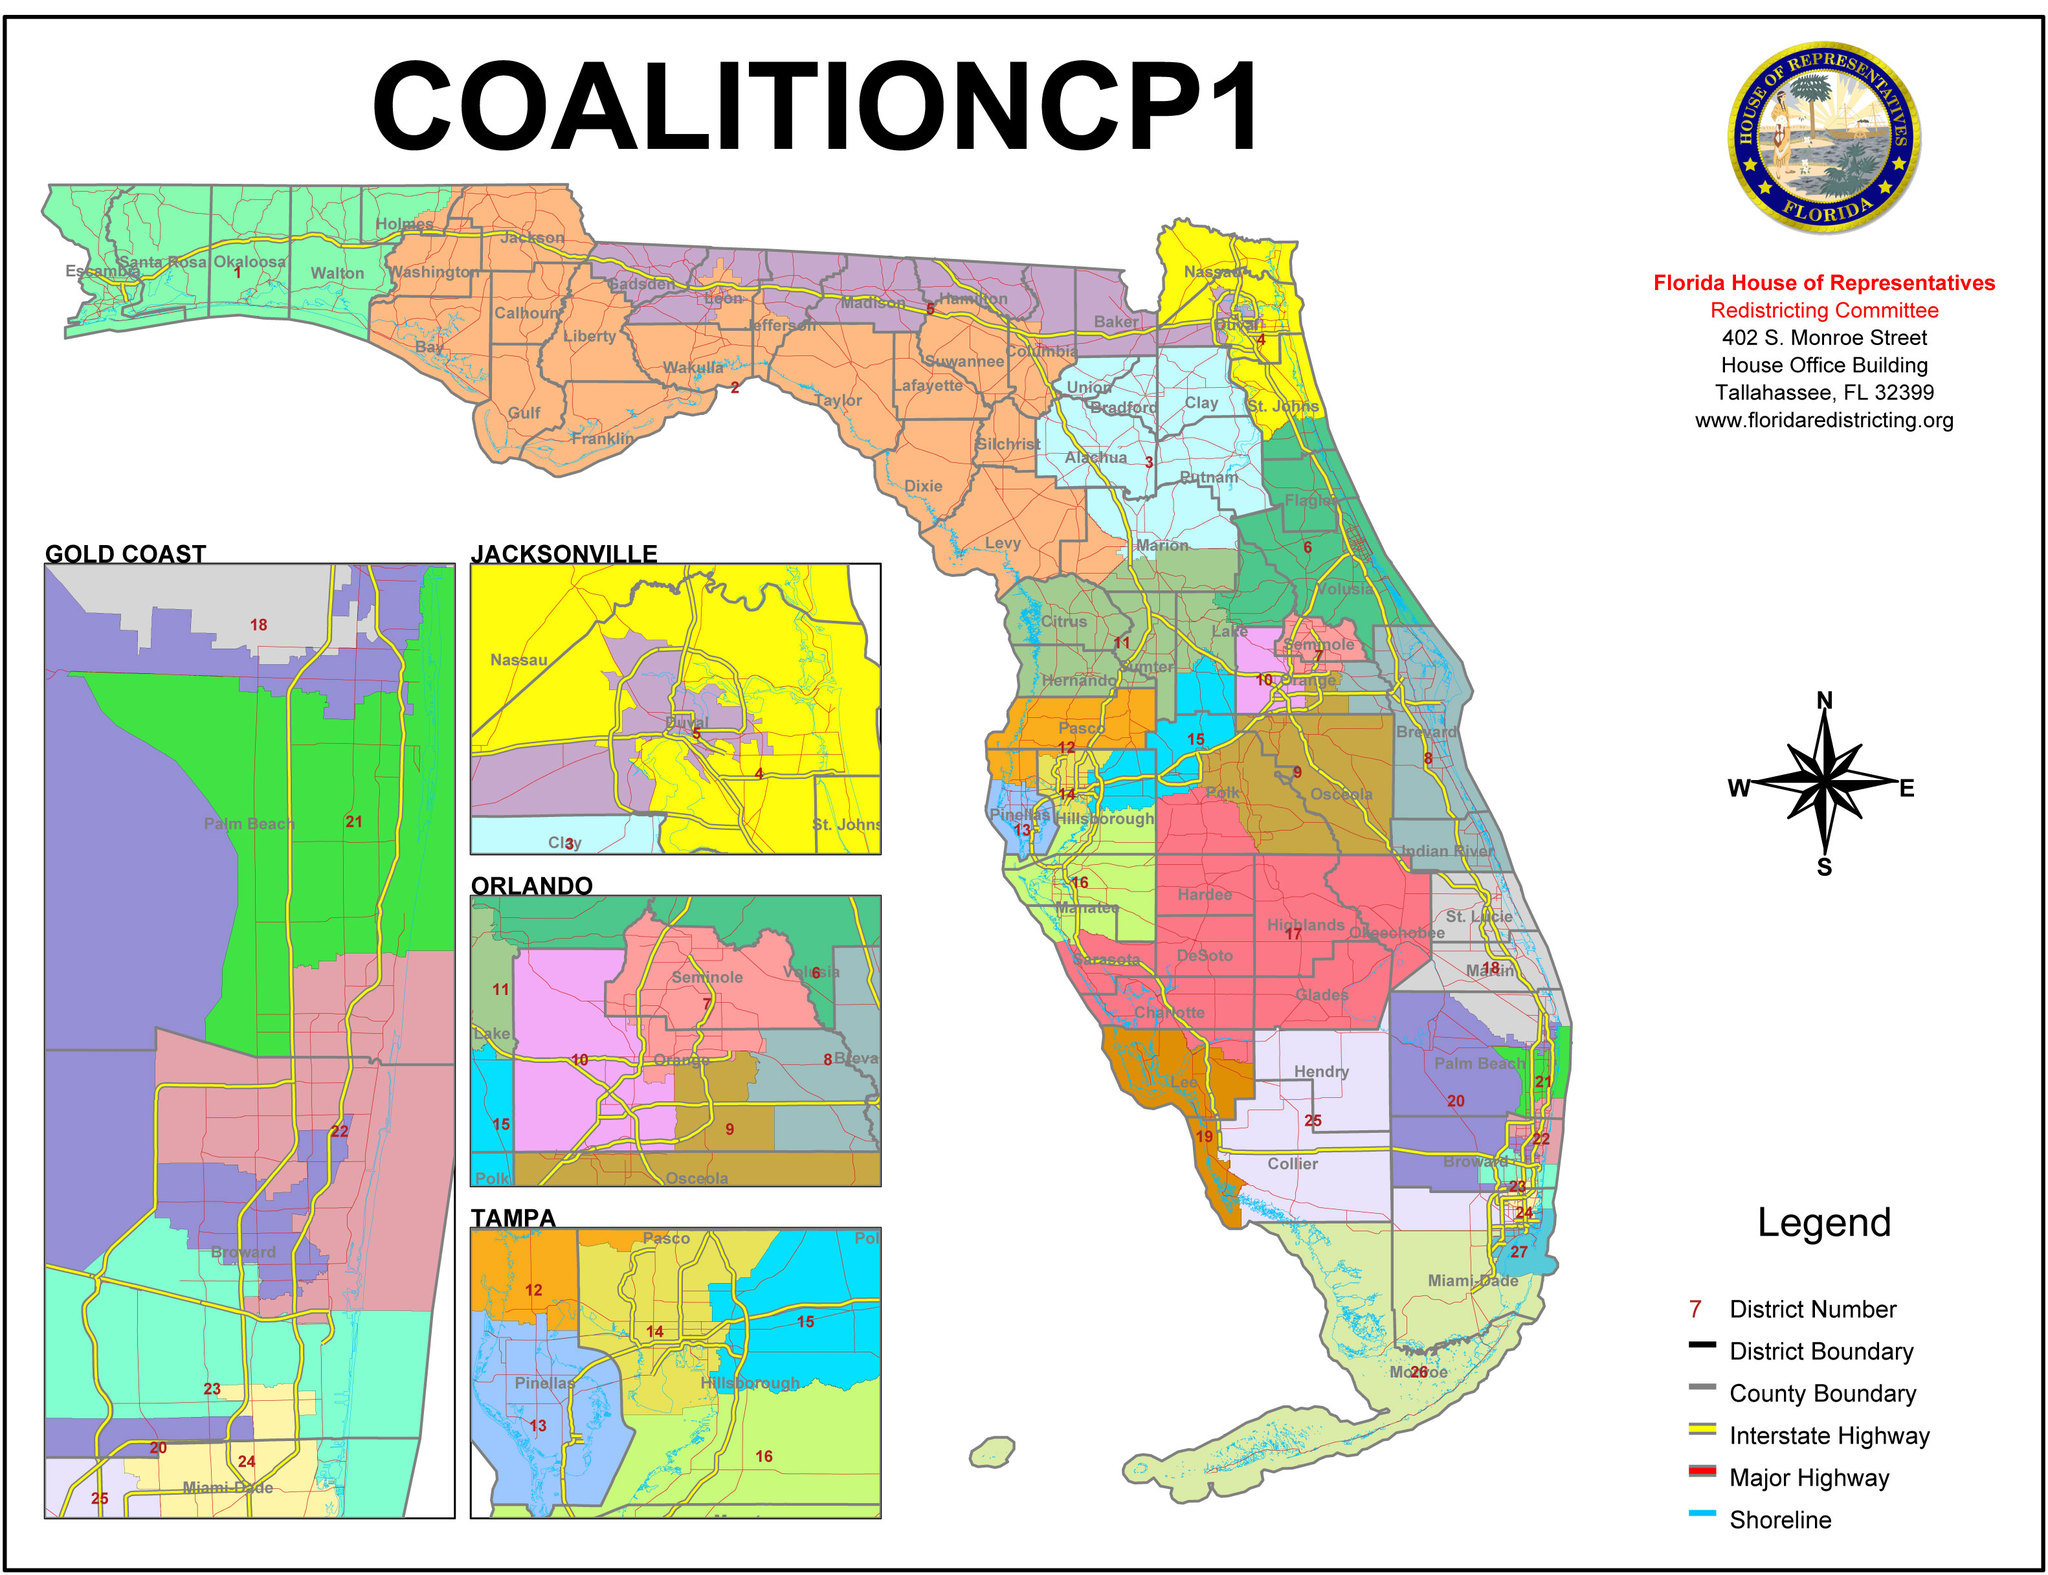 Judge Approves Floridas Congressional Districts Sun Sentinel - Us house of representatives georgia district map